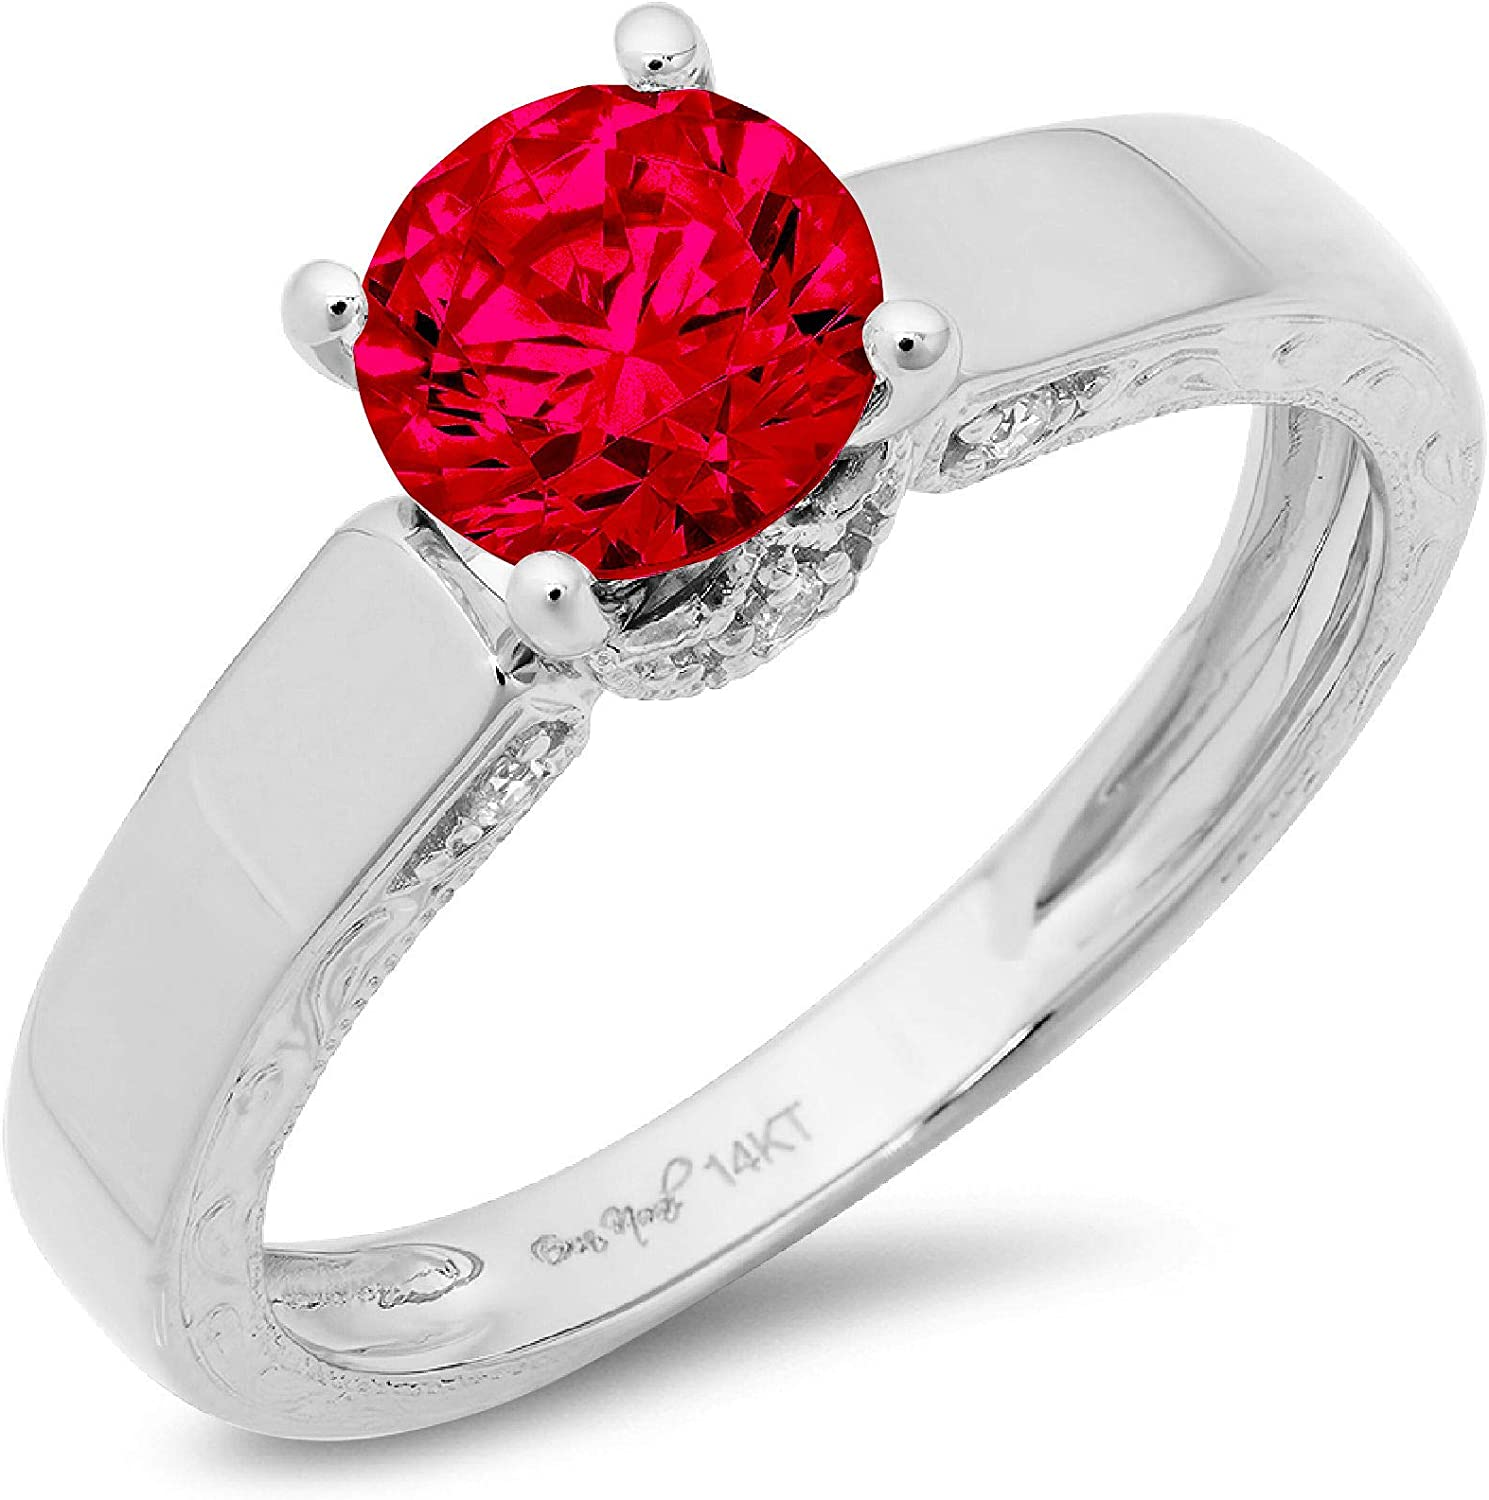 1.70ct Brilliant Round Cut Solitaire Genuine Flawless Simulated Ruby Gemstone Engagement Promise Anniversary Bridal Wedding Accent Ring Solid 18K White Gold